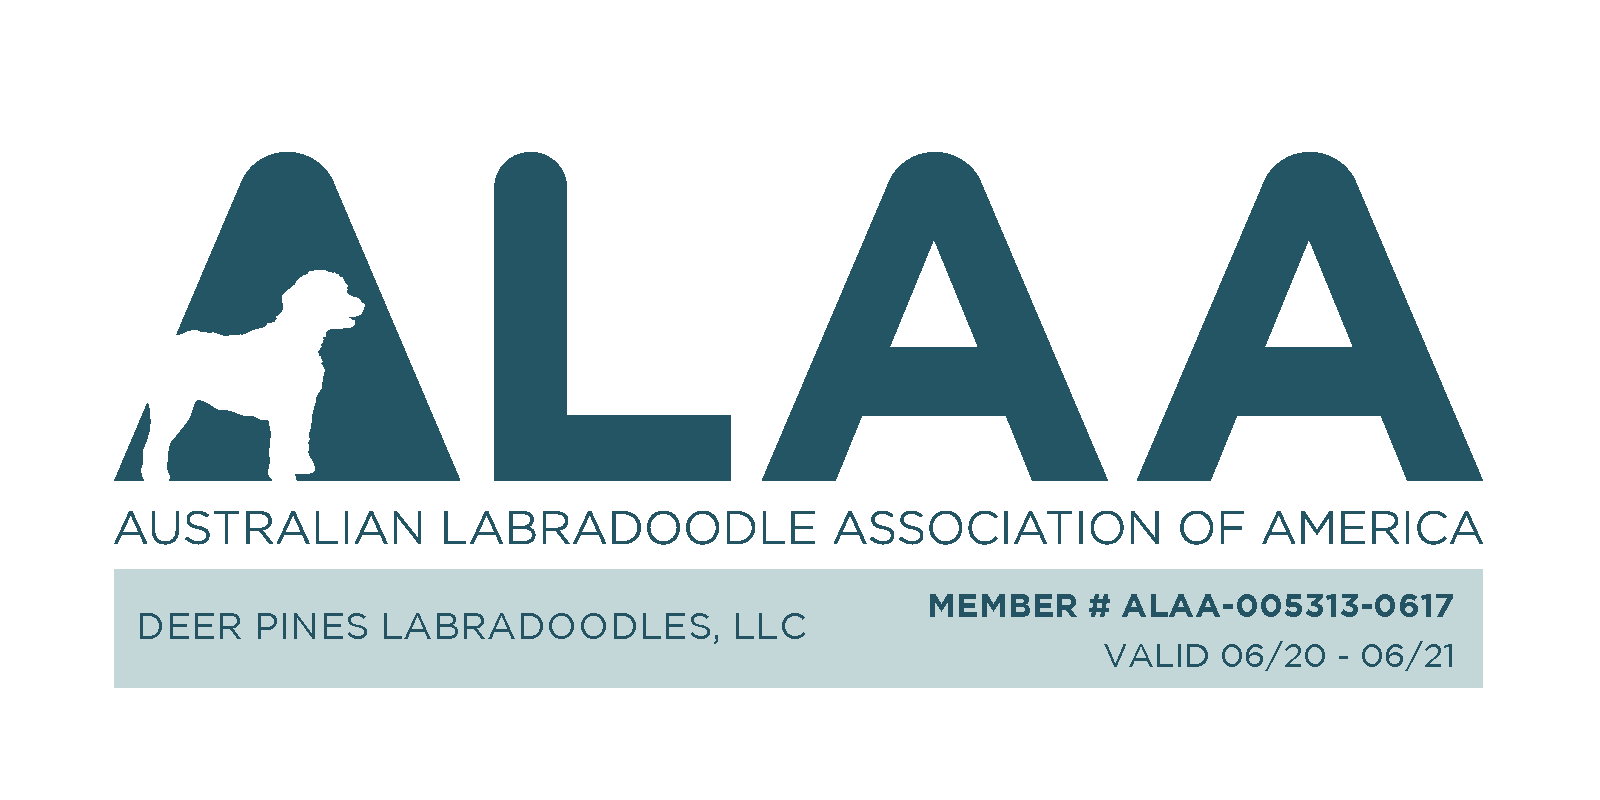 Australian Labradoodle Association of America